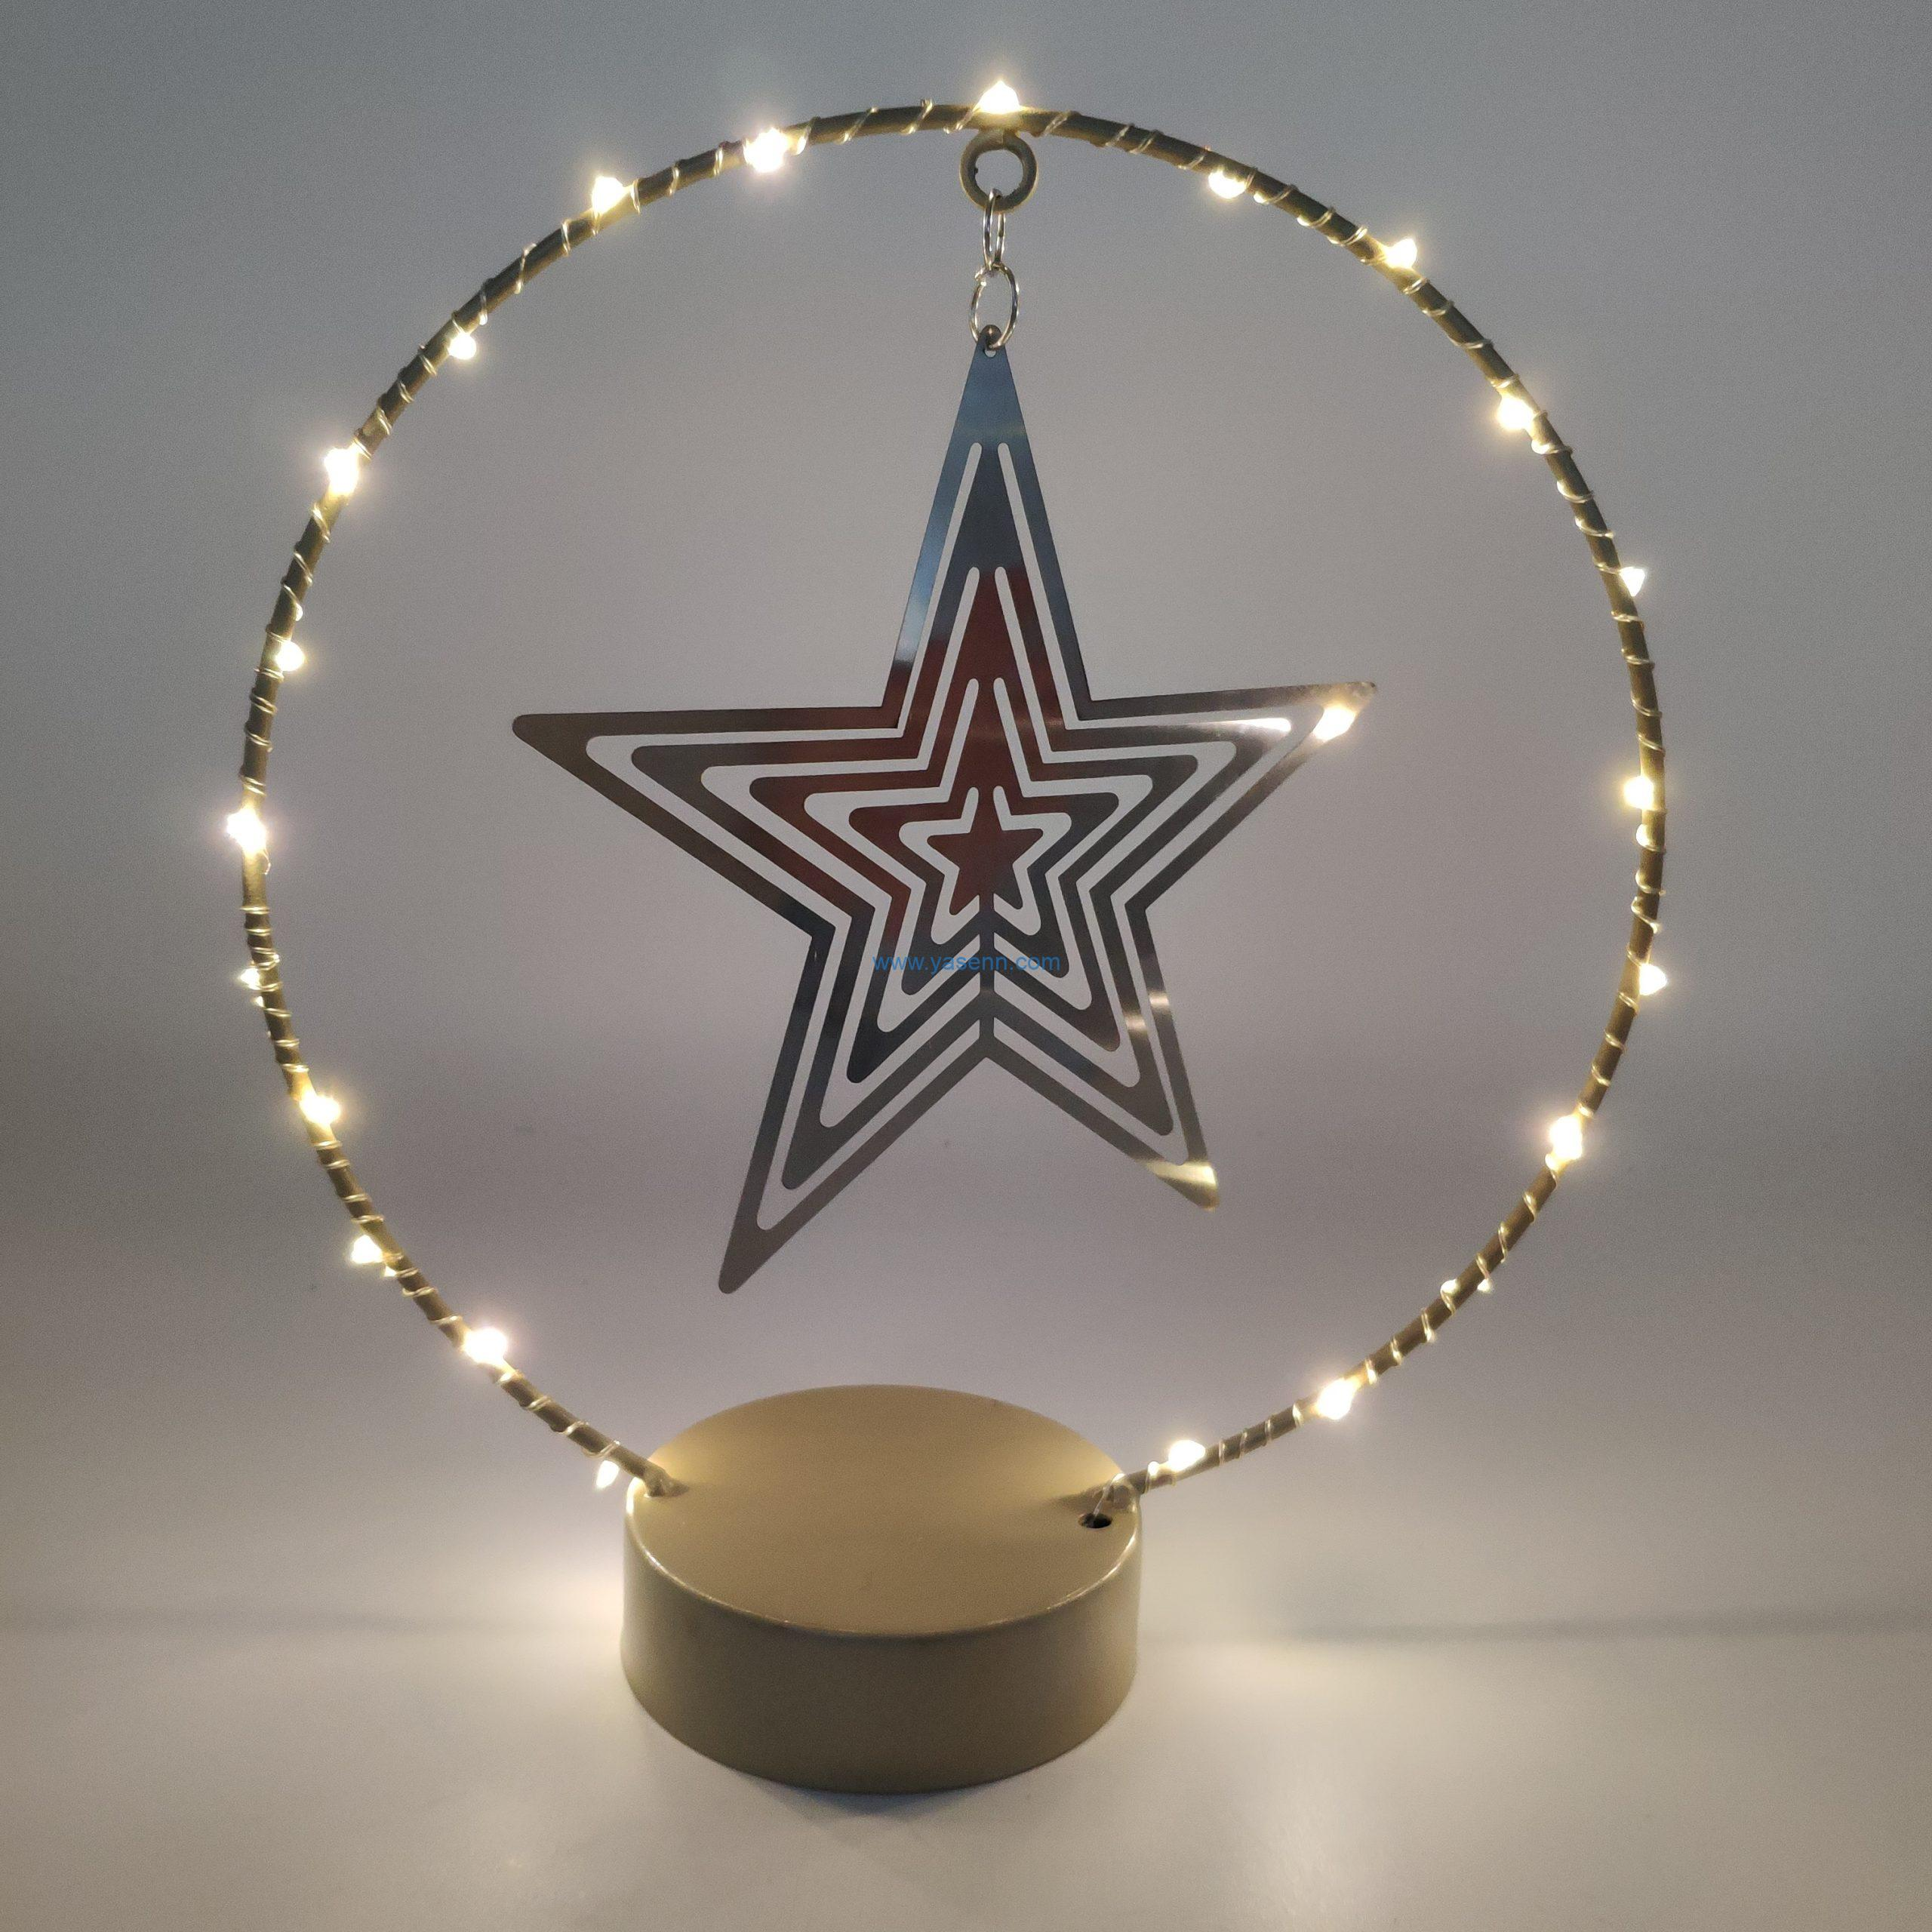 LED Star Light YSLB068 20L LED Copper Wire Light With Star in the Circle Design